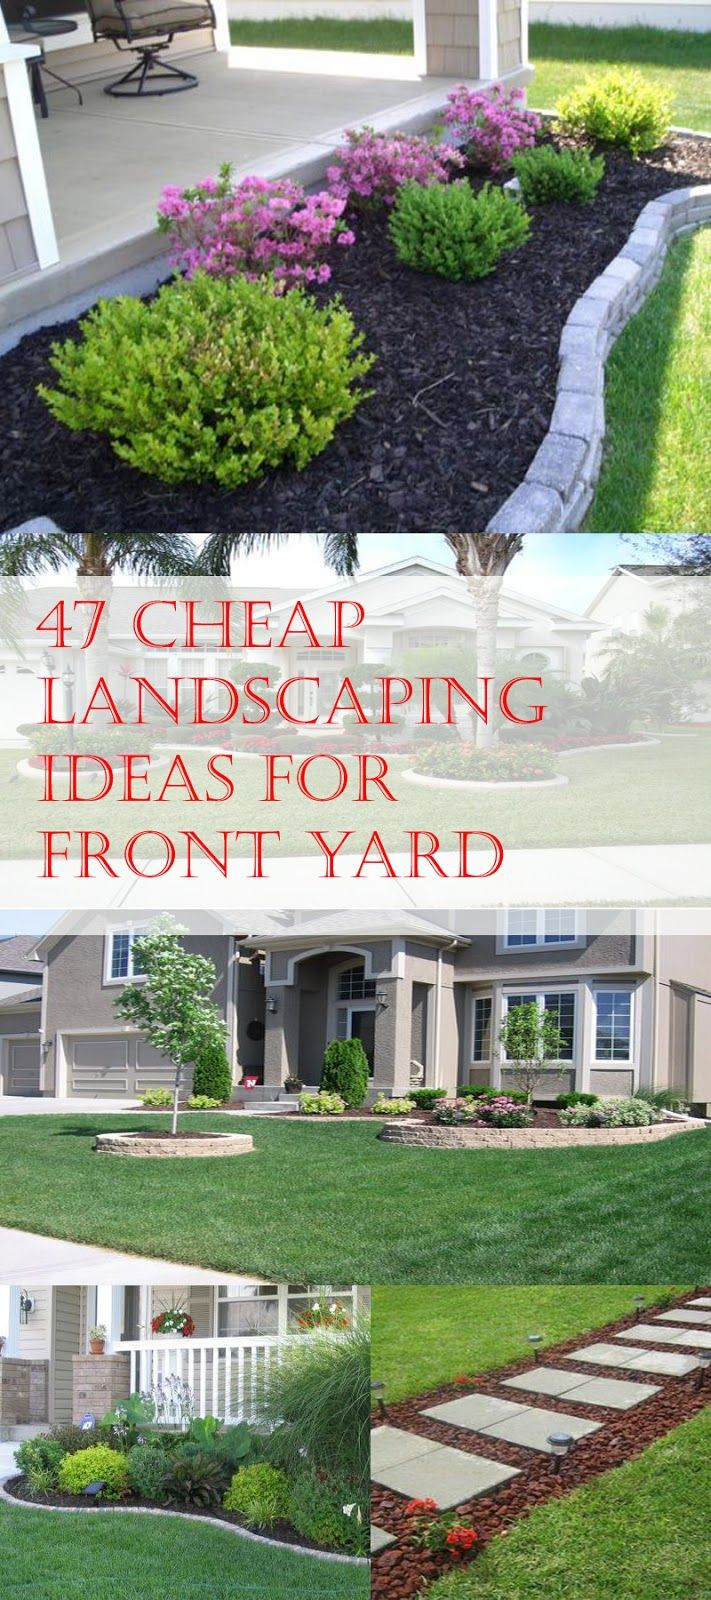 Front house garden plan ideas - 47 Cheap Landscaping Ideas For Front Yard